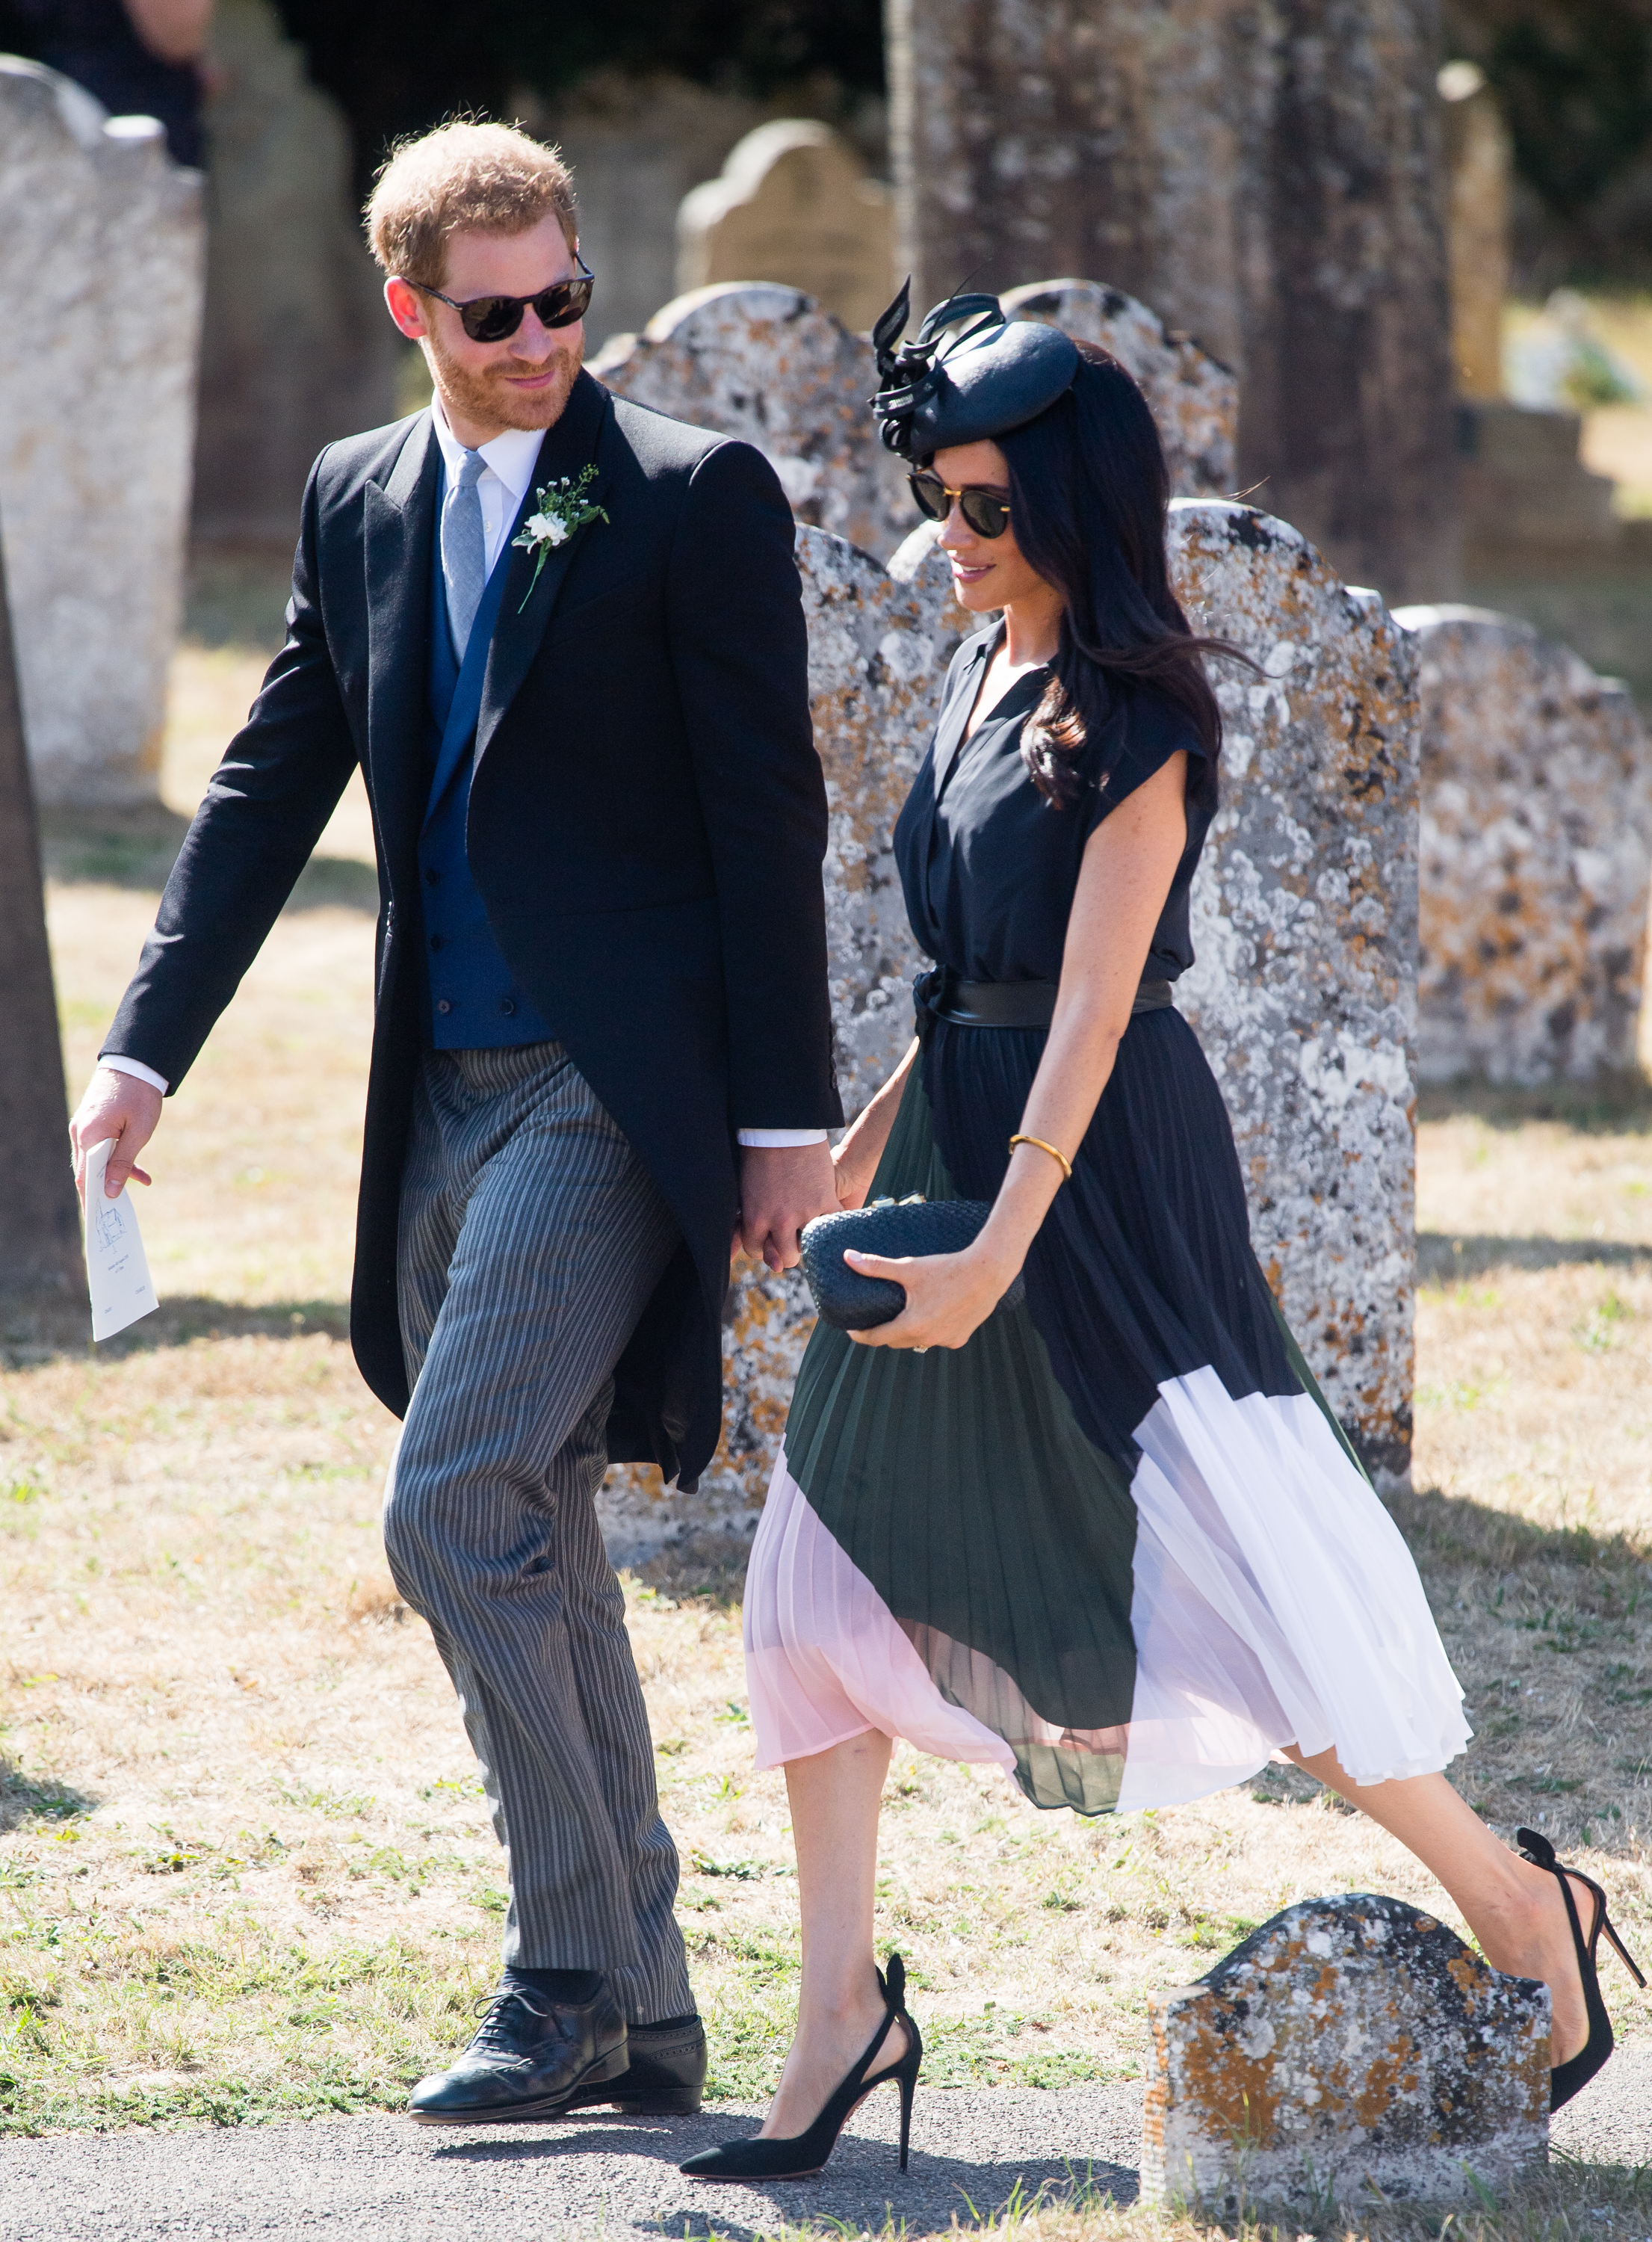 prince harry is smitten with meghan markle while attending his friend s wedding on her birthday https www theknotnews com meghan markle birthday prince harry friend wedding 32373